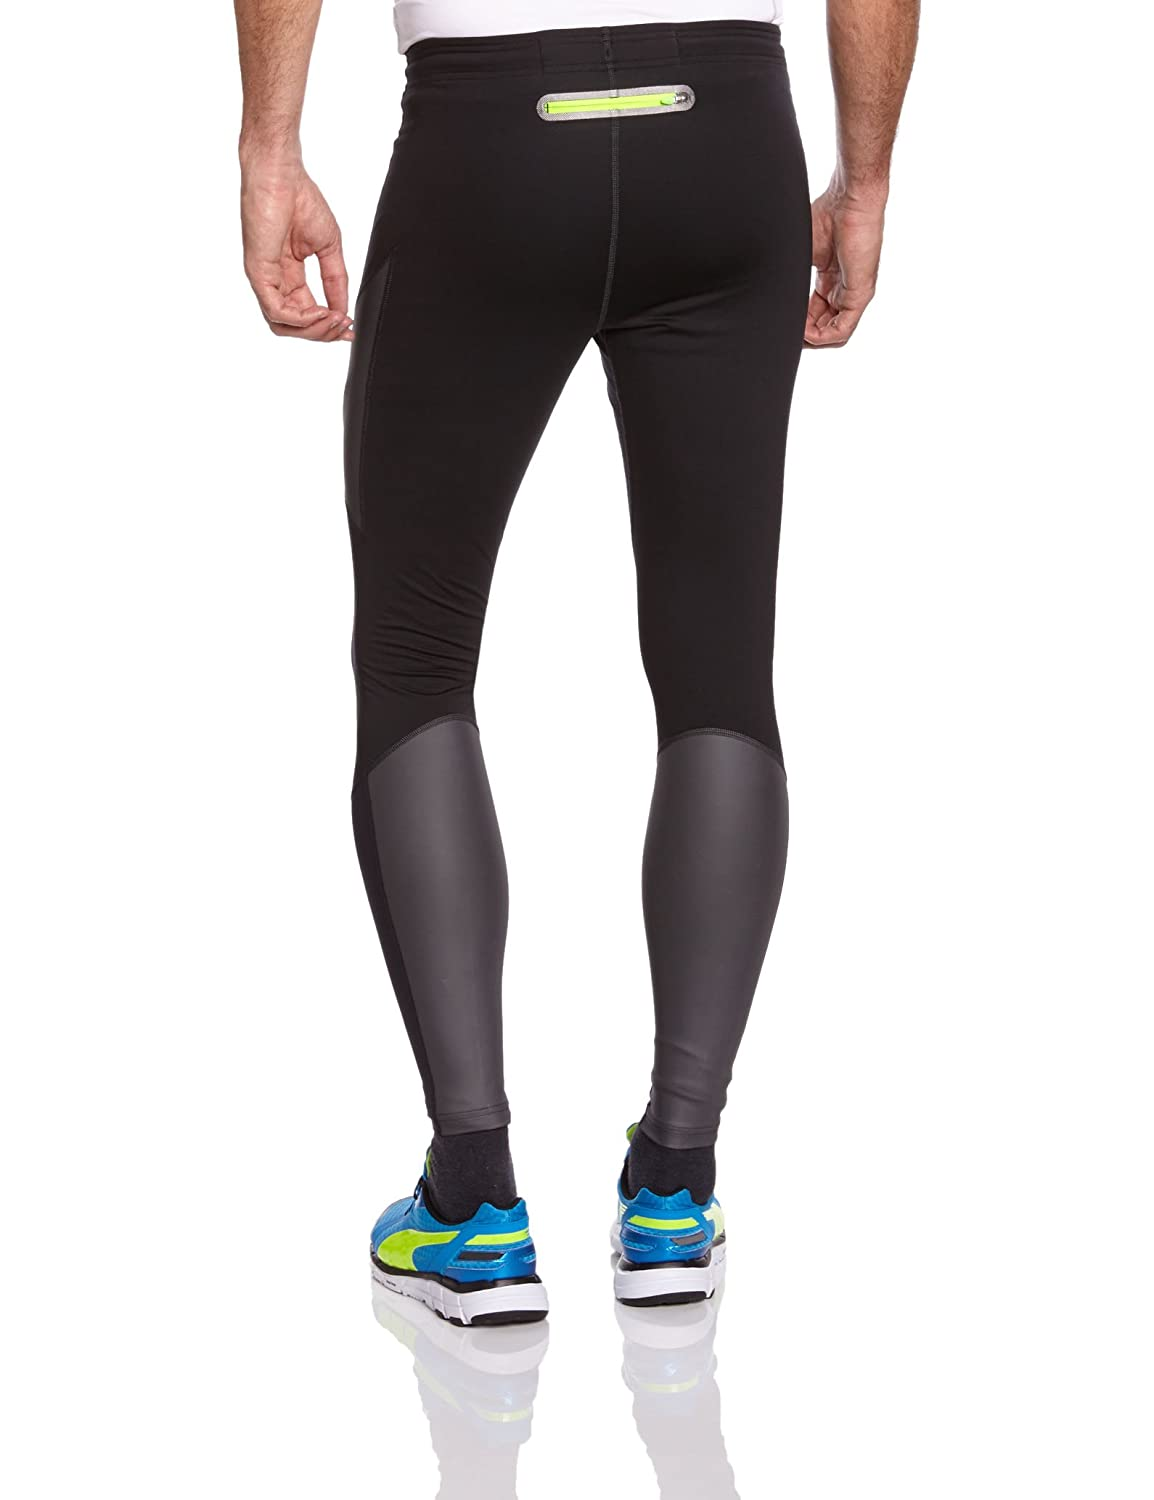 e92396fda Under Armour Stealth Storm Running Tights